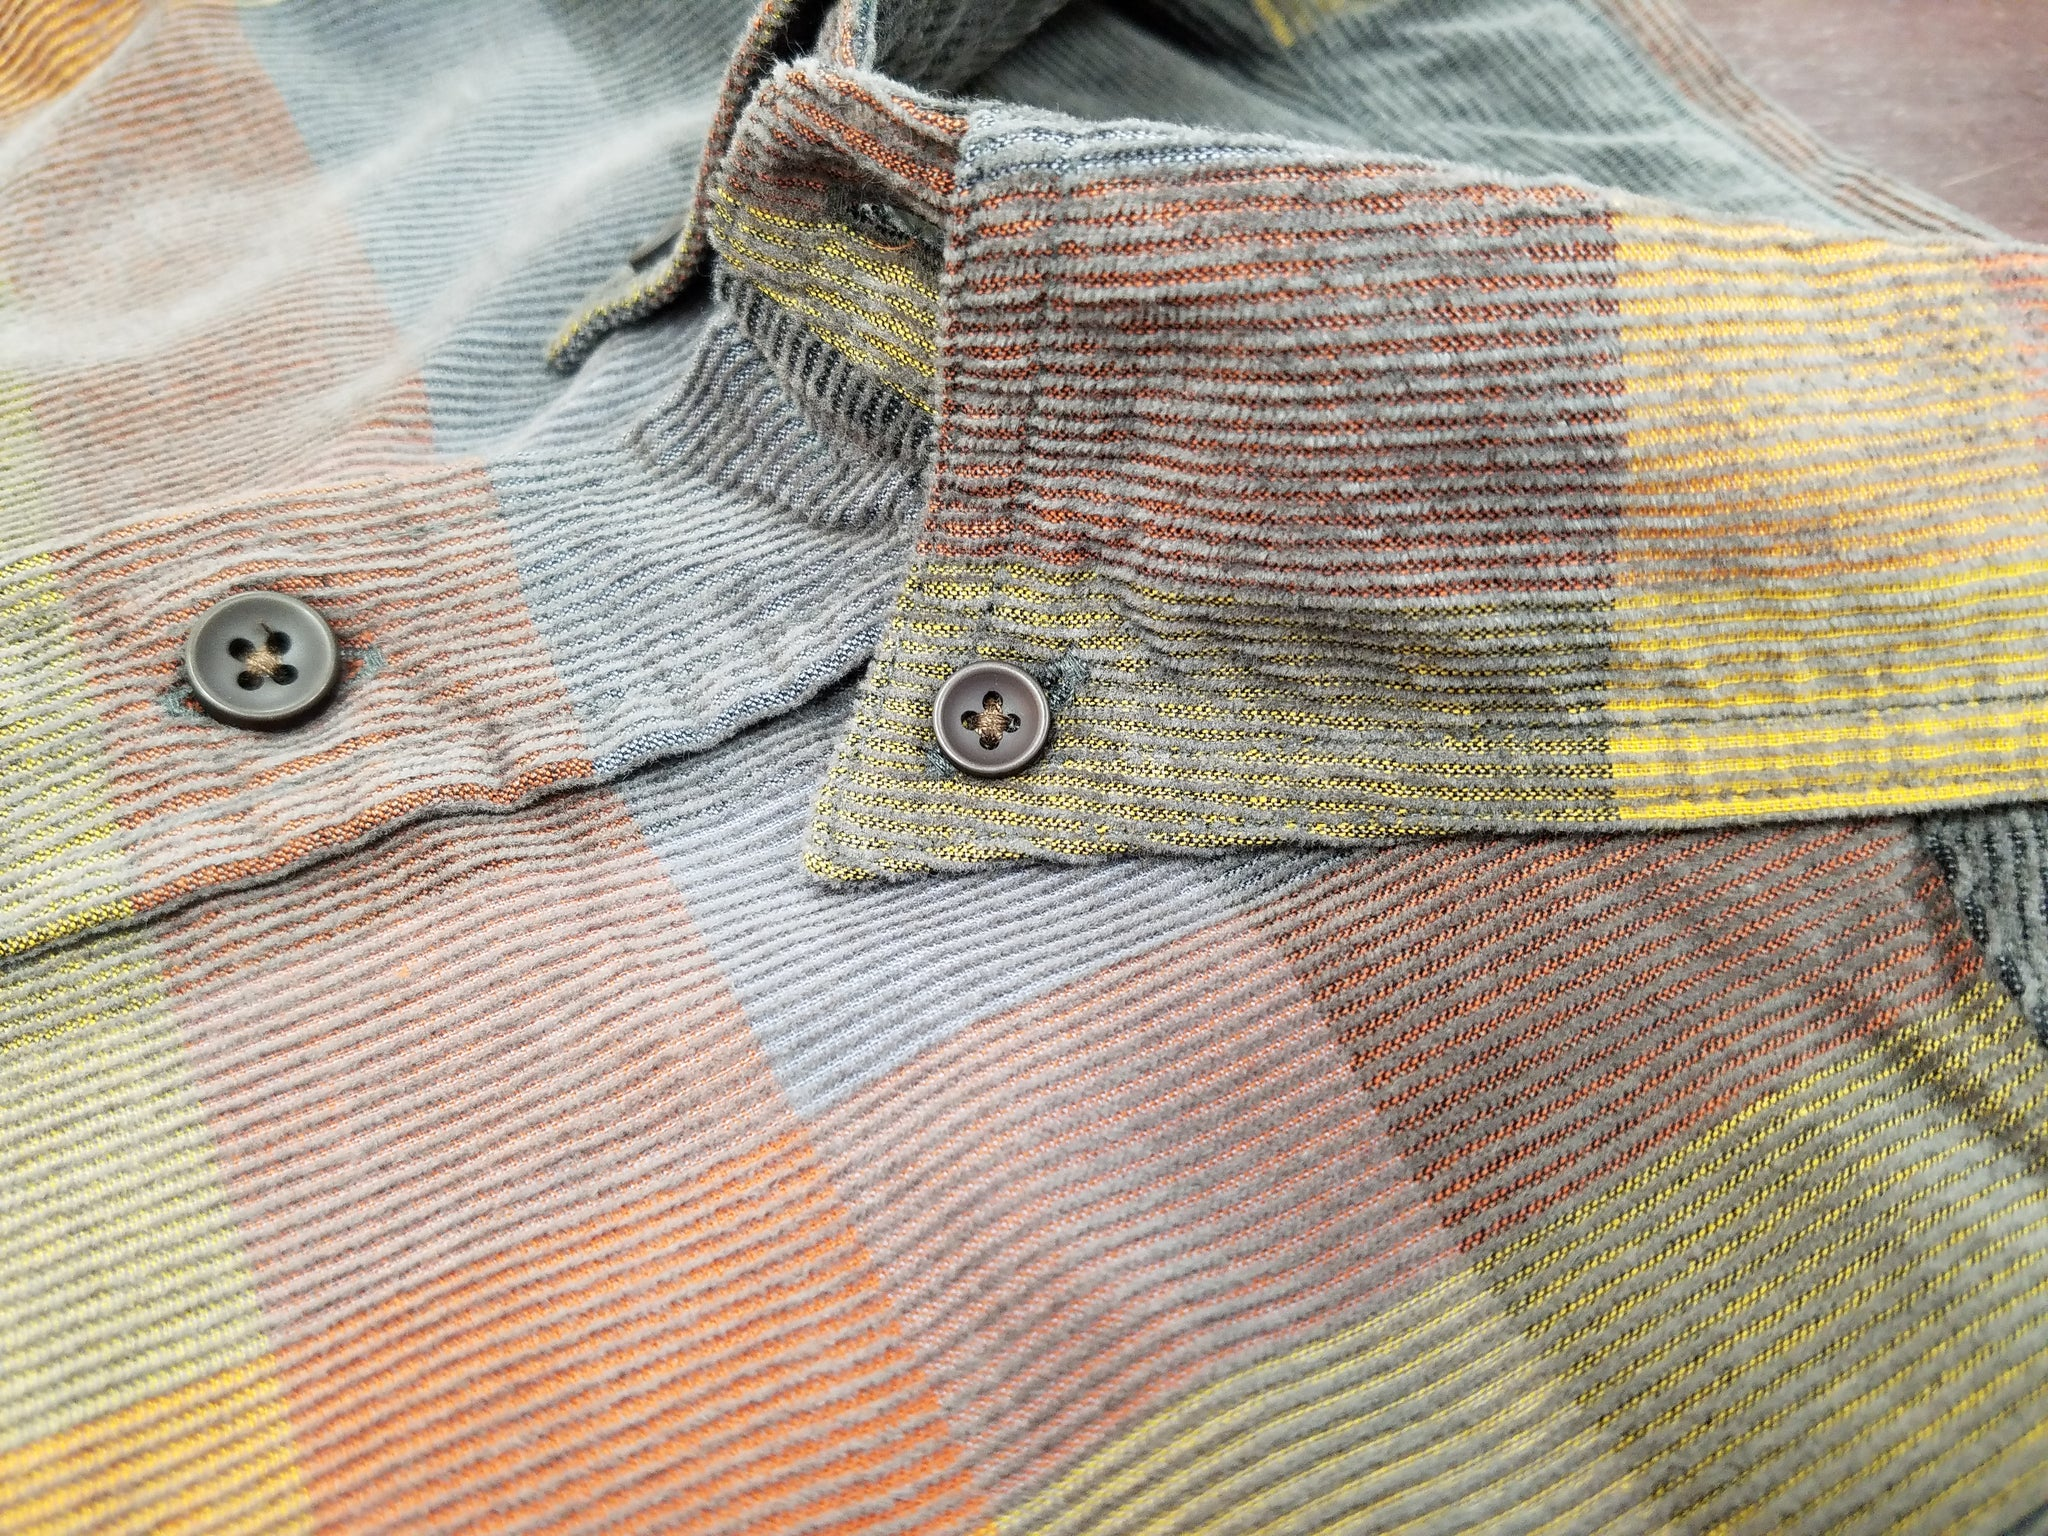 Washed Corduroy With Button Down Collar Sport Shirt In Grey & Multi Color Plaid Button Up Long Sleeve Shirt - Rainwater's